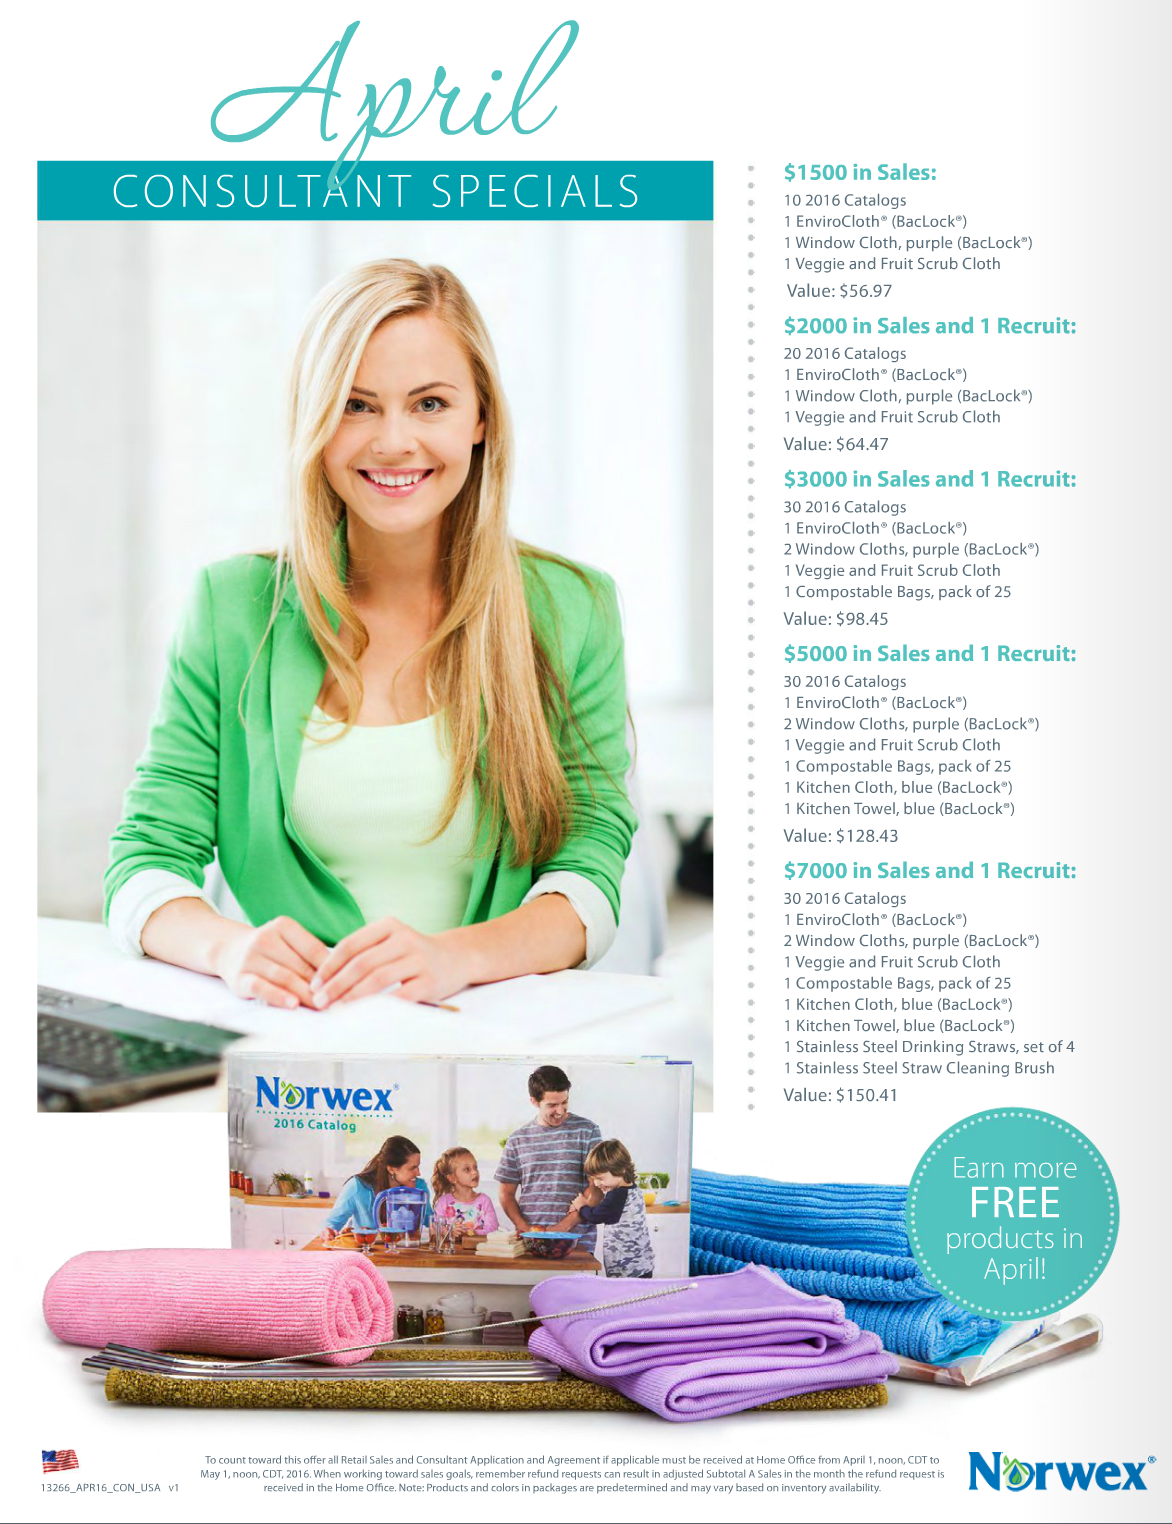 Norwex Hostess and Customer Specials for April 2016